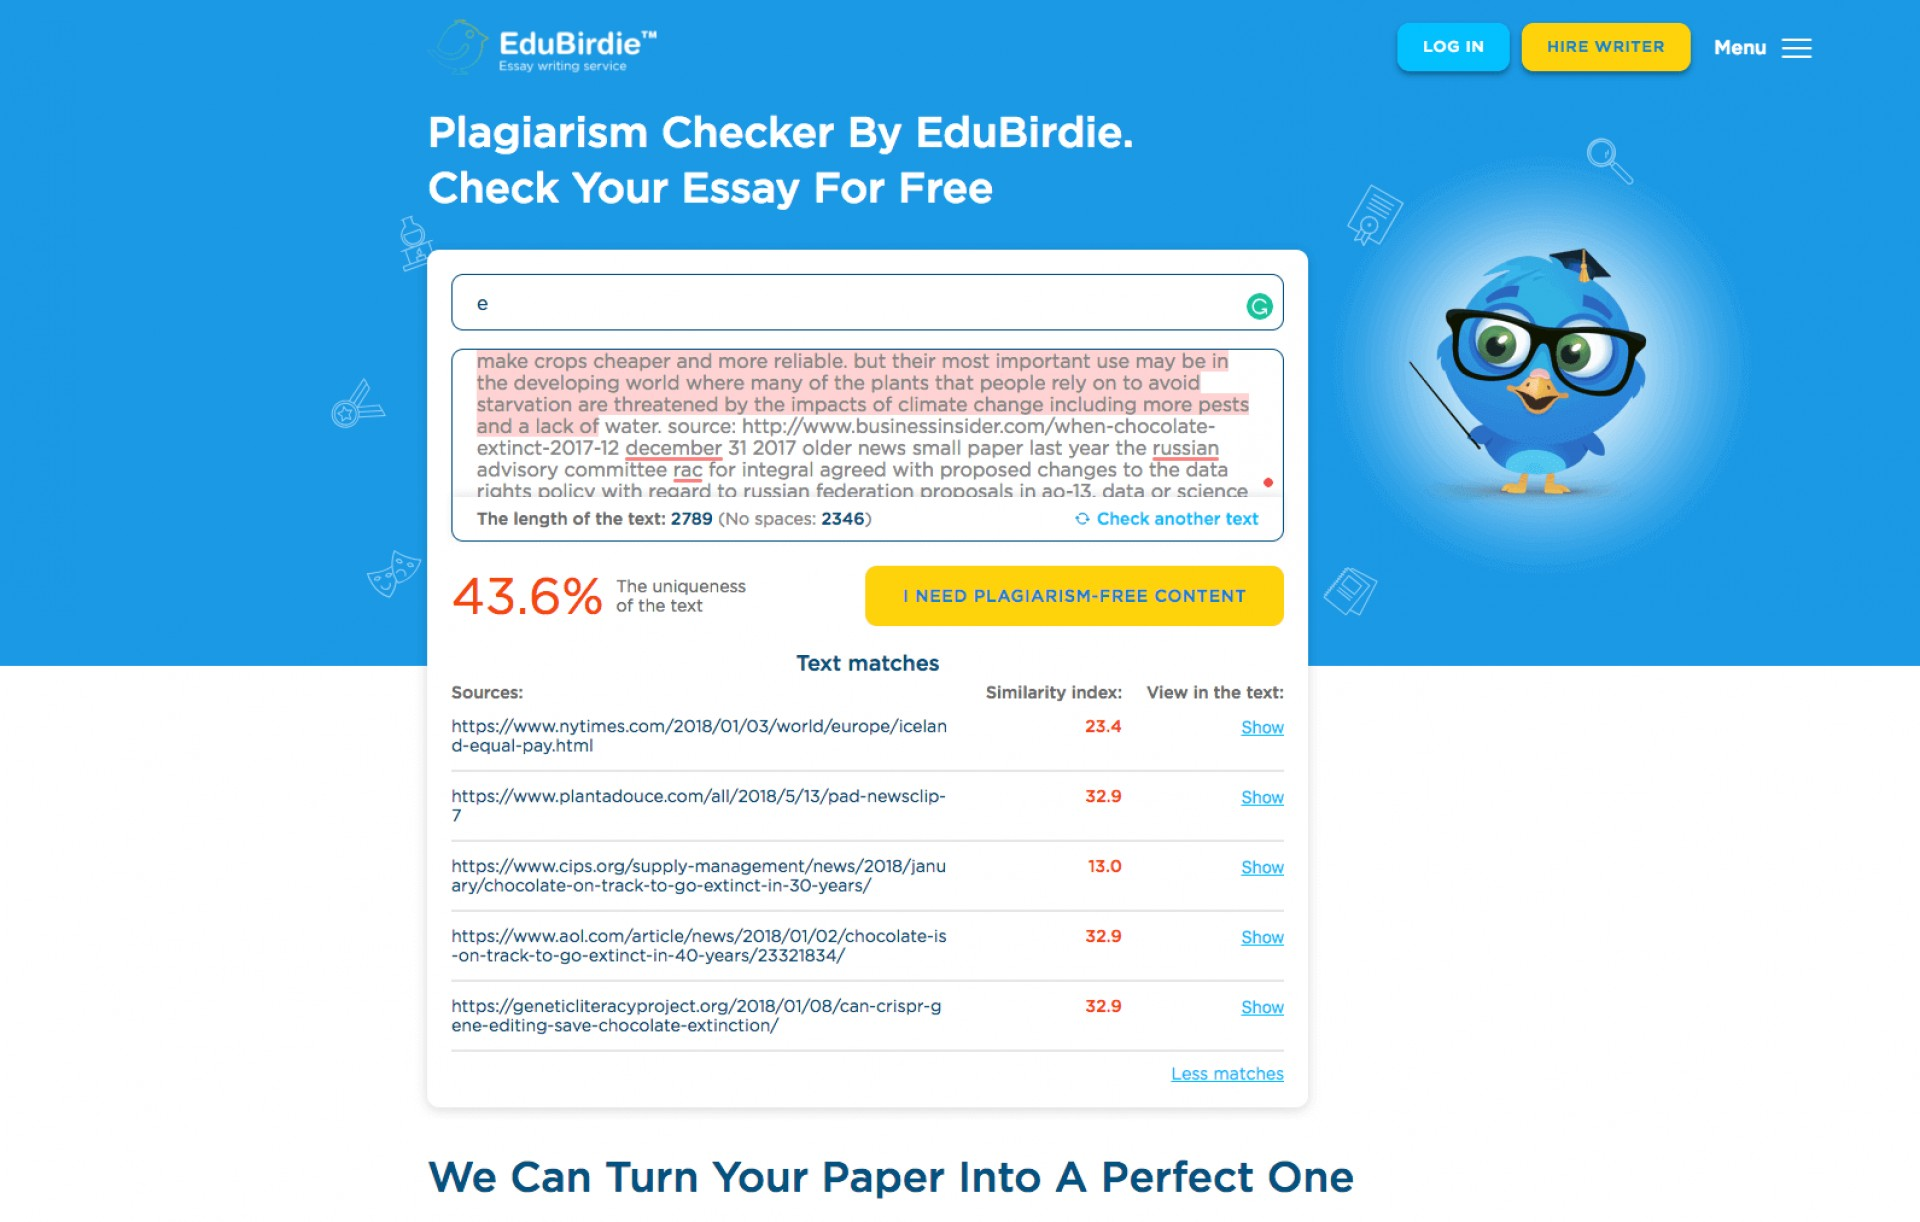 013 Free Research Paper Plagiarism Checker Unusual 1920